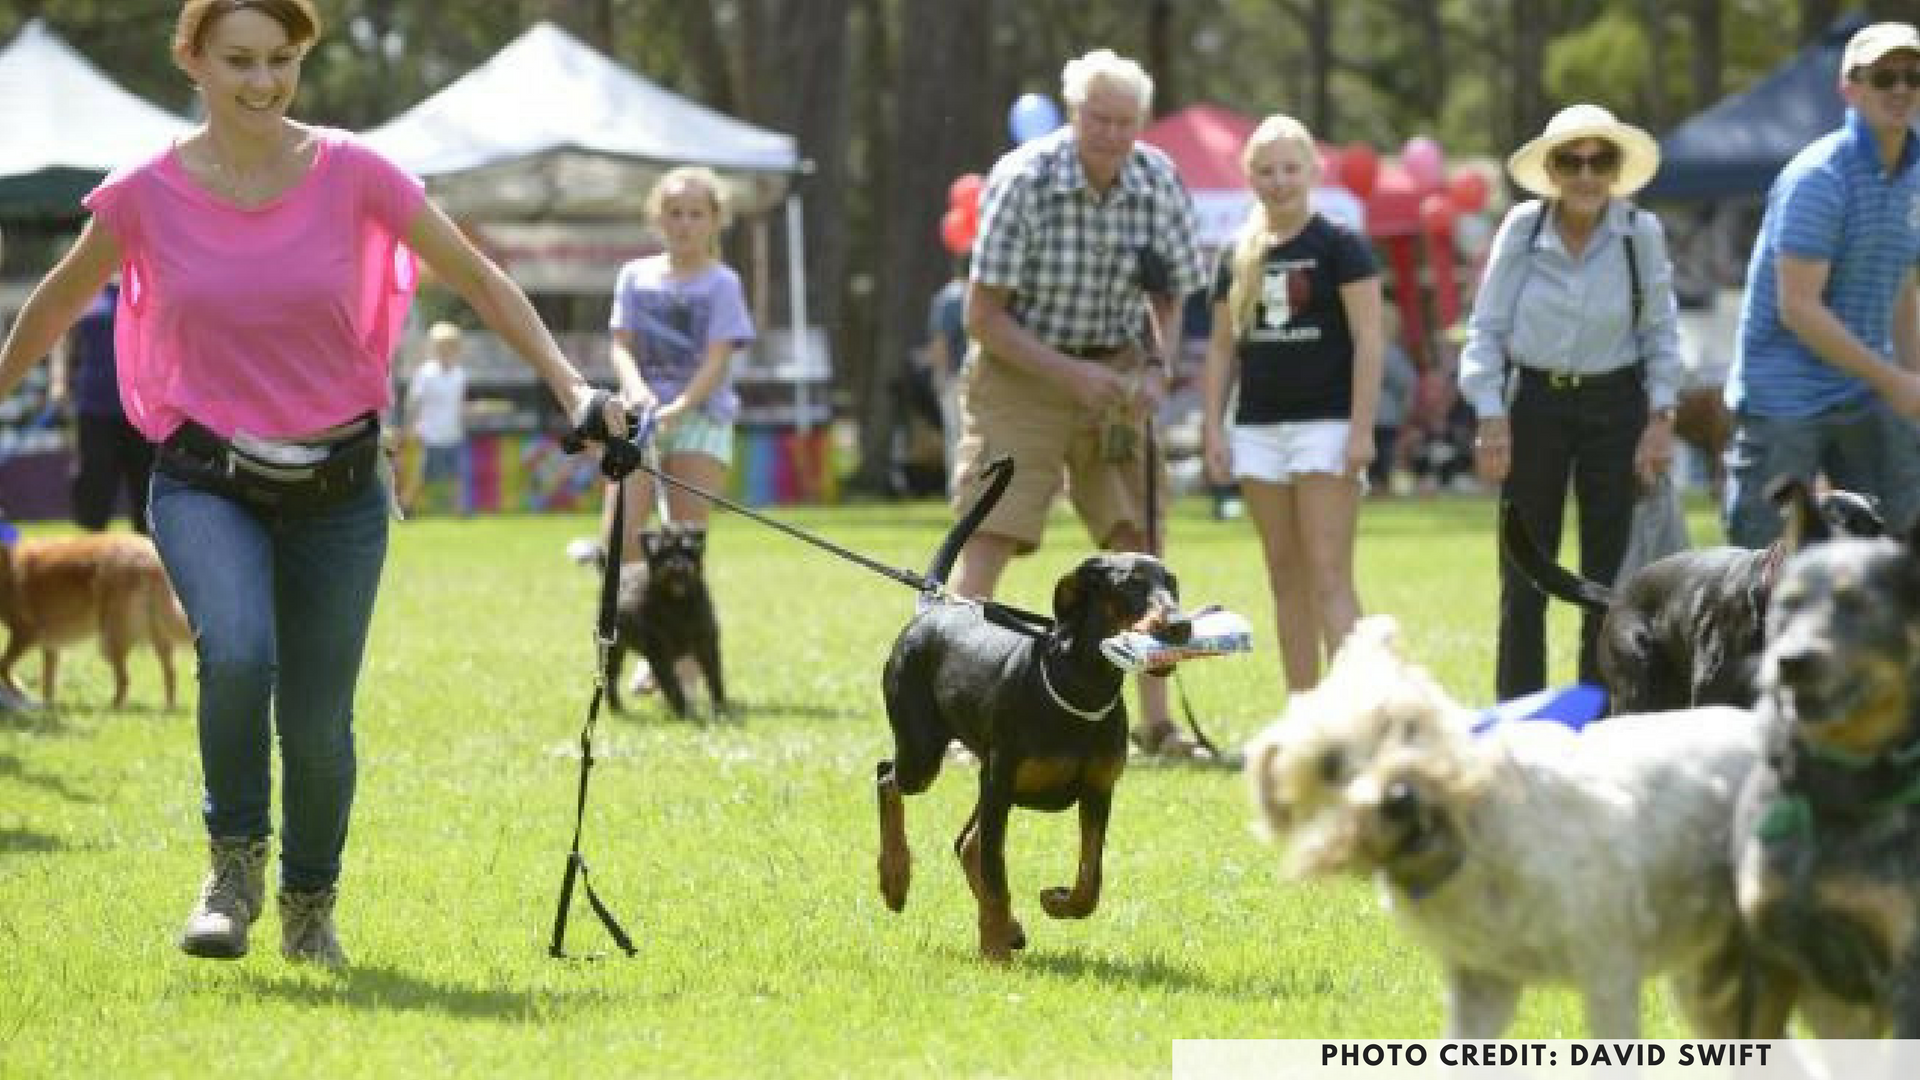 St Ives Showground, St Ives, Sydney, dog friendly parks, dog parks, petcloud